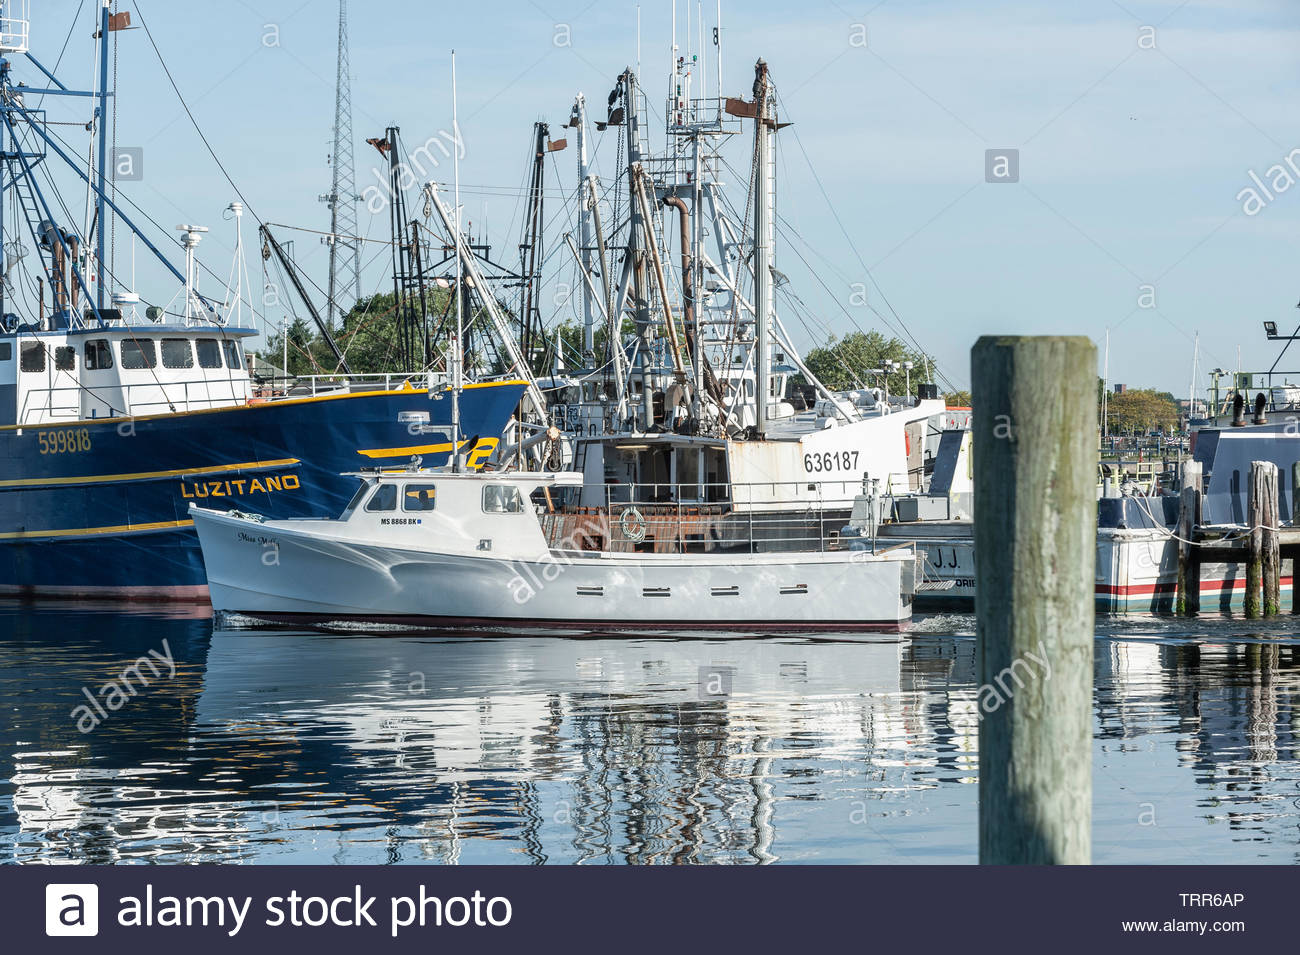 Fairhaven, Massachusetts, USA - June 9, 2019: Lobster boat